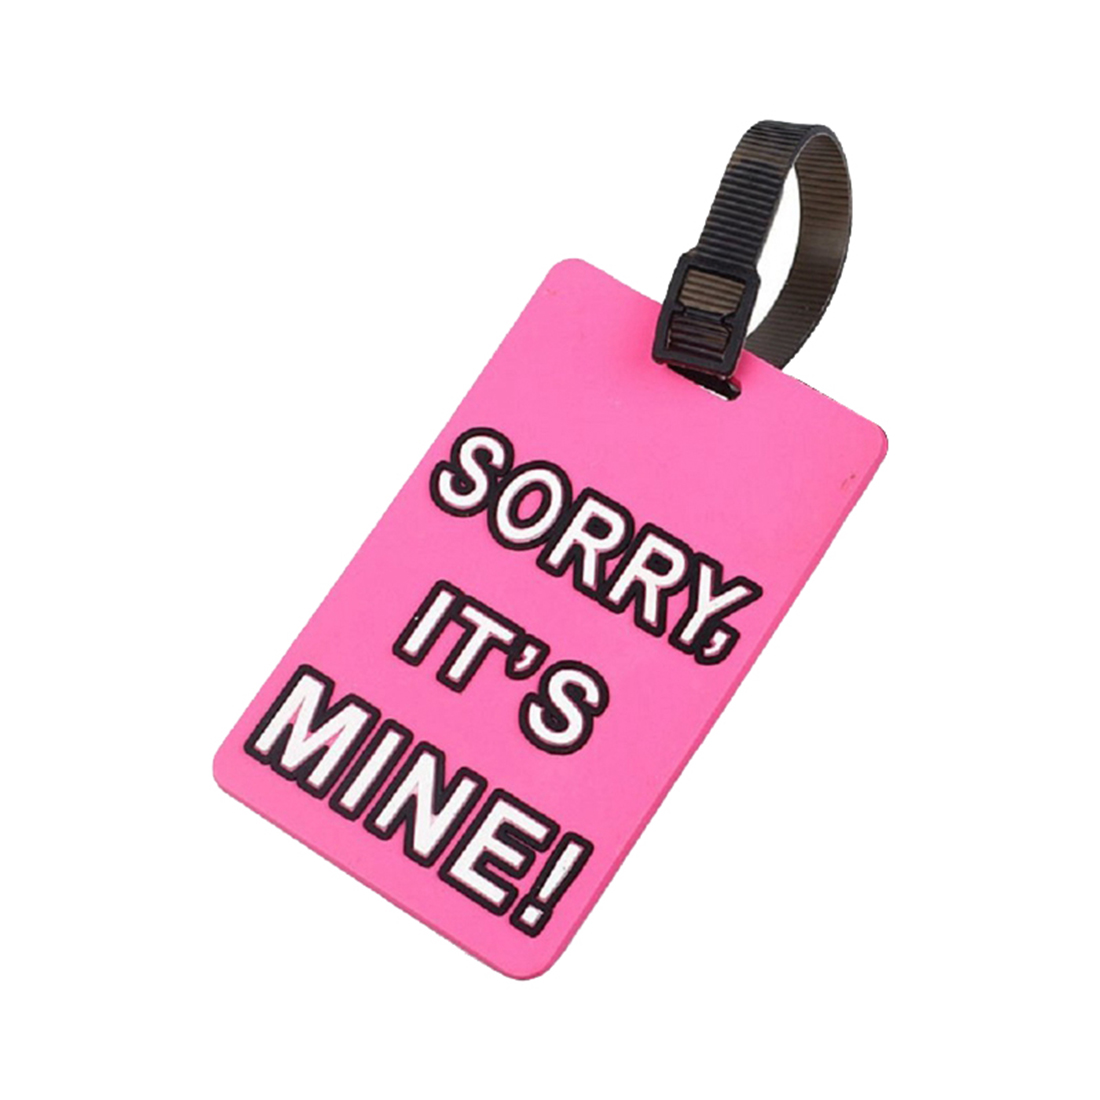 AIMA SORRY ITS MINE Luggage Carrier Holder ID-Adress Label Identifier Silicone on Luggage Tag for Suitcase (pink)